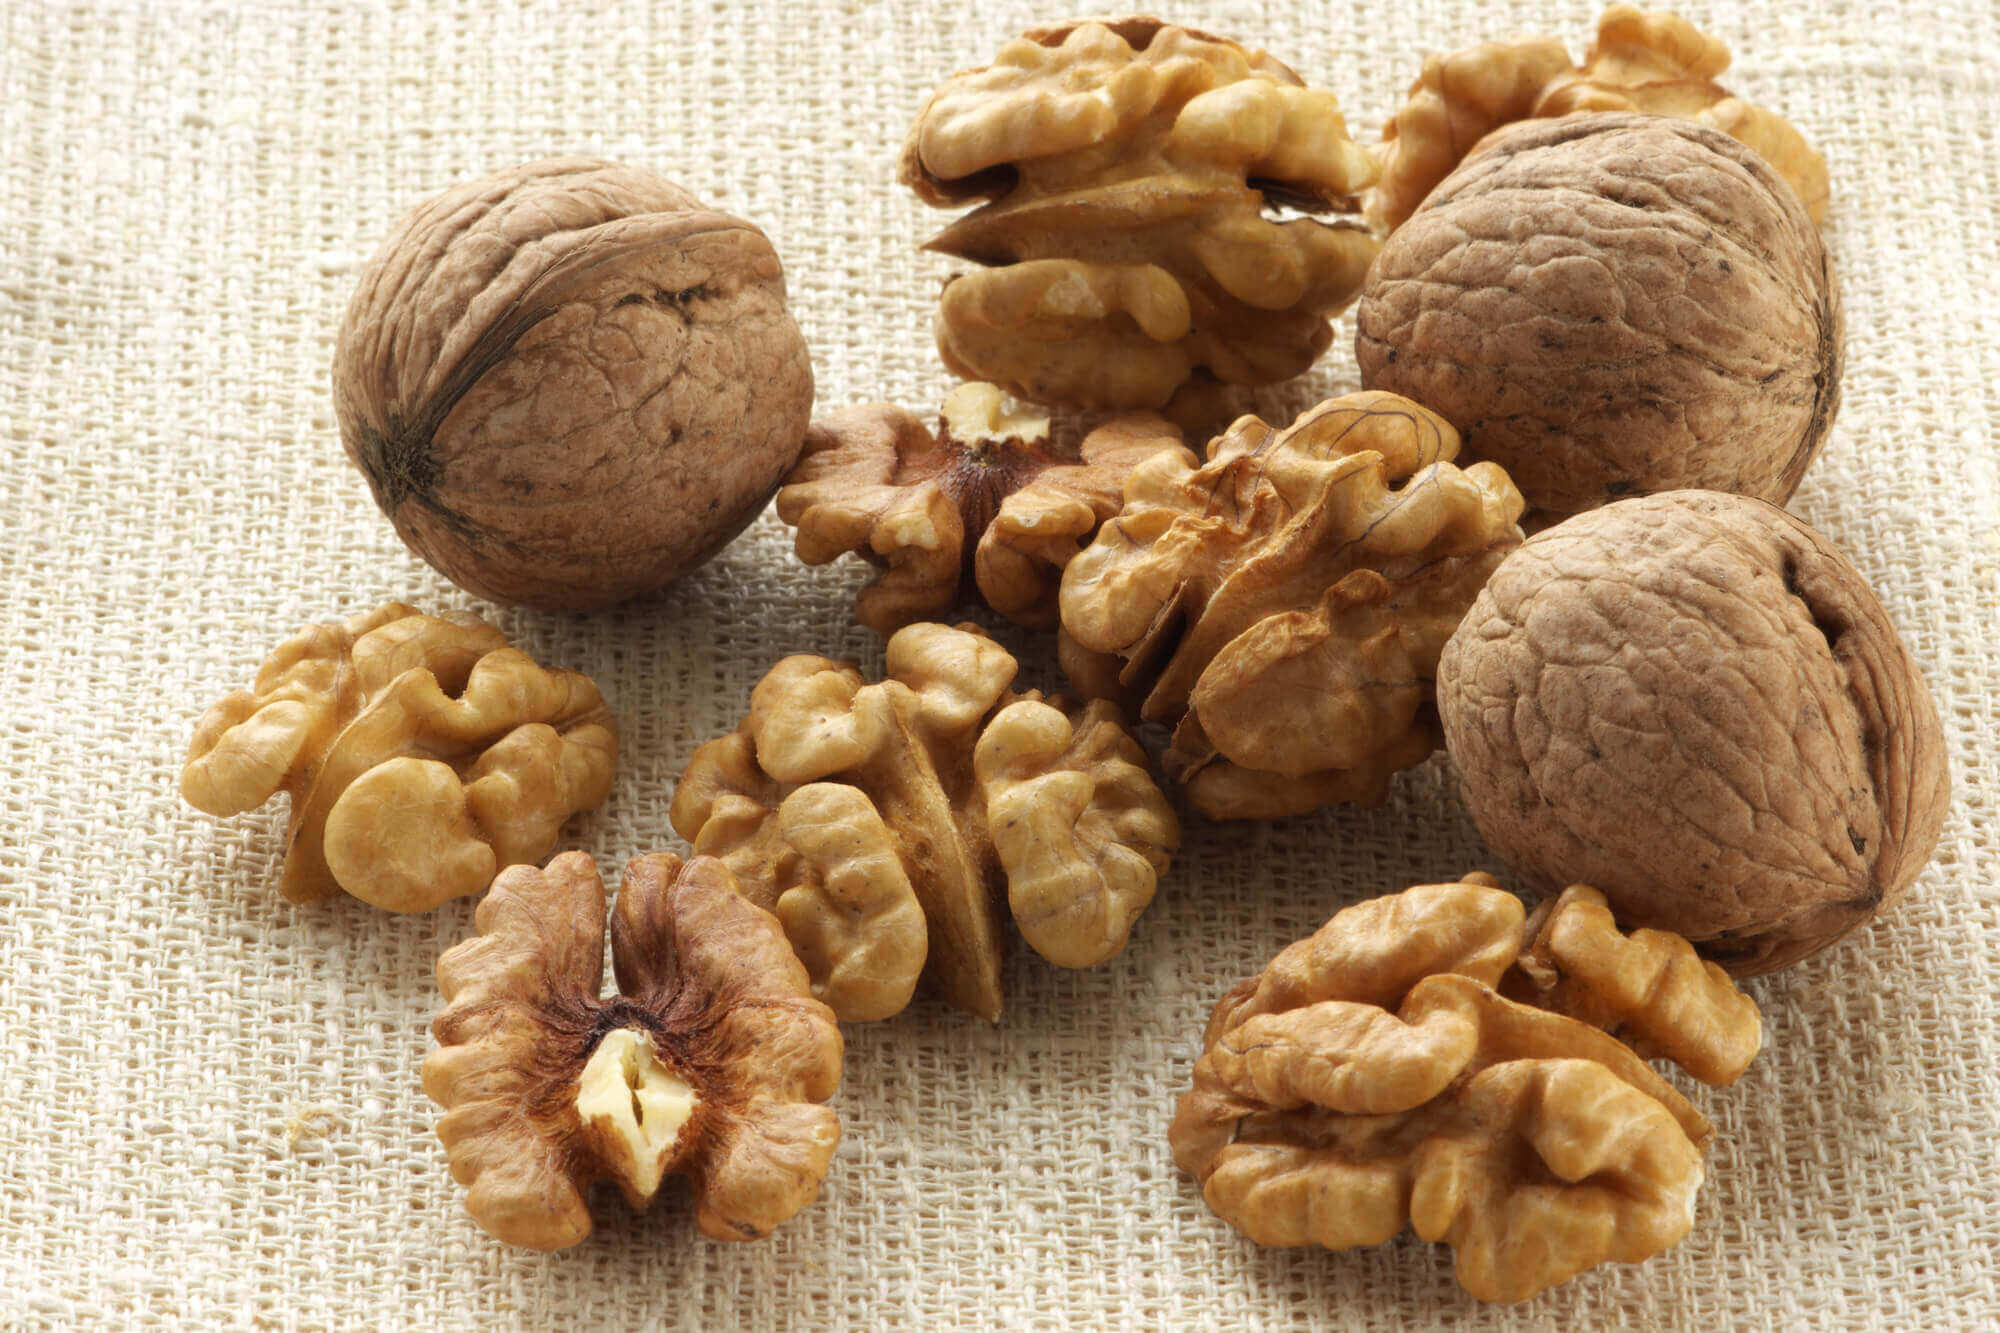 Walnuts as after school snacks